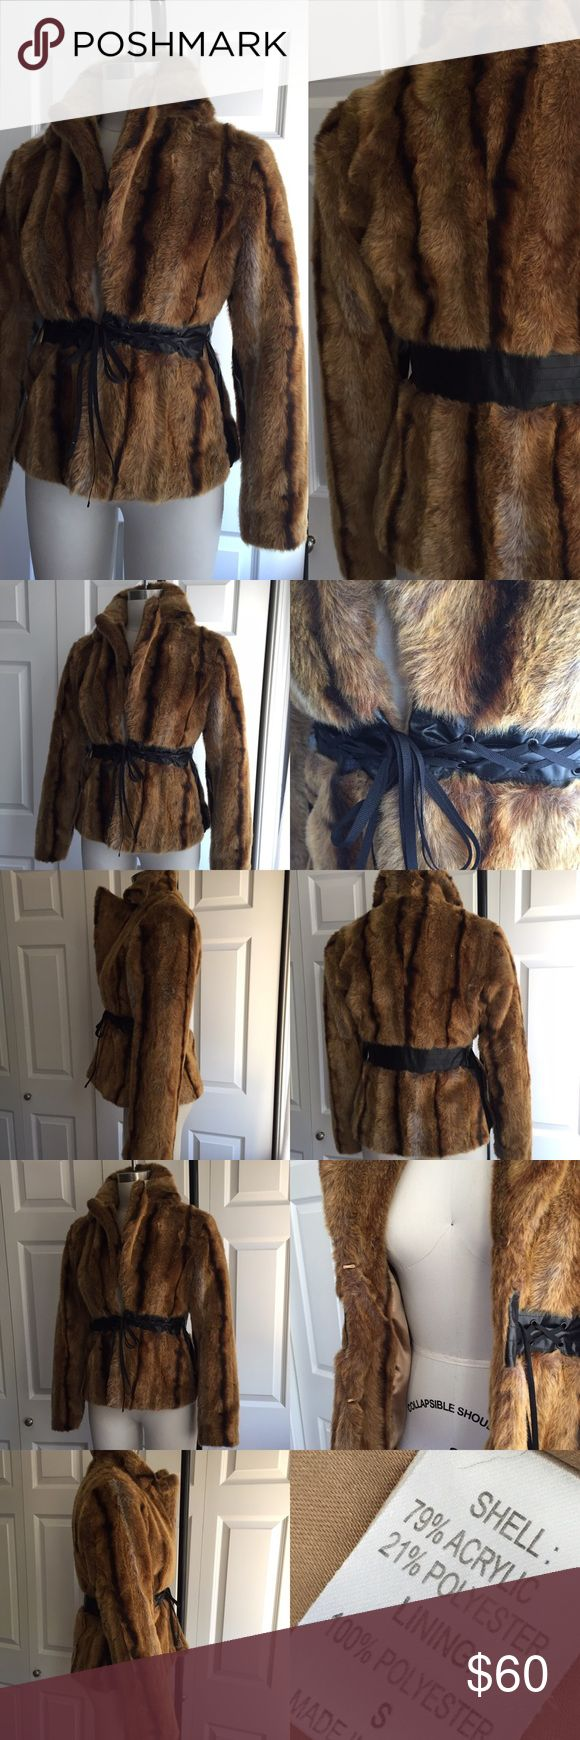 Vintage 90s Faux Fur Mink Coat Bomber Jacket Amazing mint condition vintage faux fur bomber jacket. It has an awesome lace up cinched waist to give a great shape!! Size small. This looks like it came straight off of the American Hustle wardrobe rack. Jackets & Coats